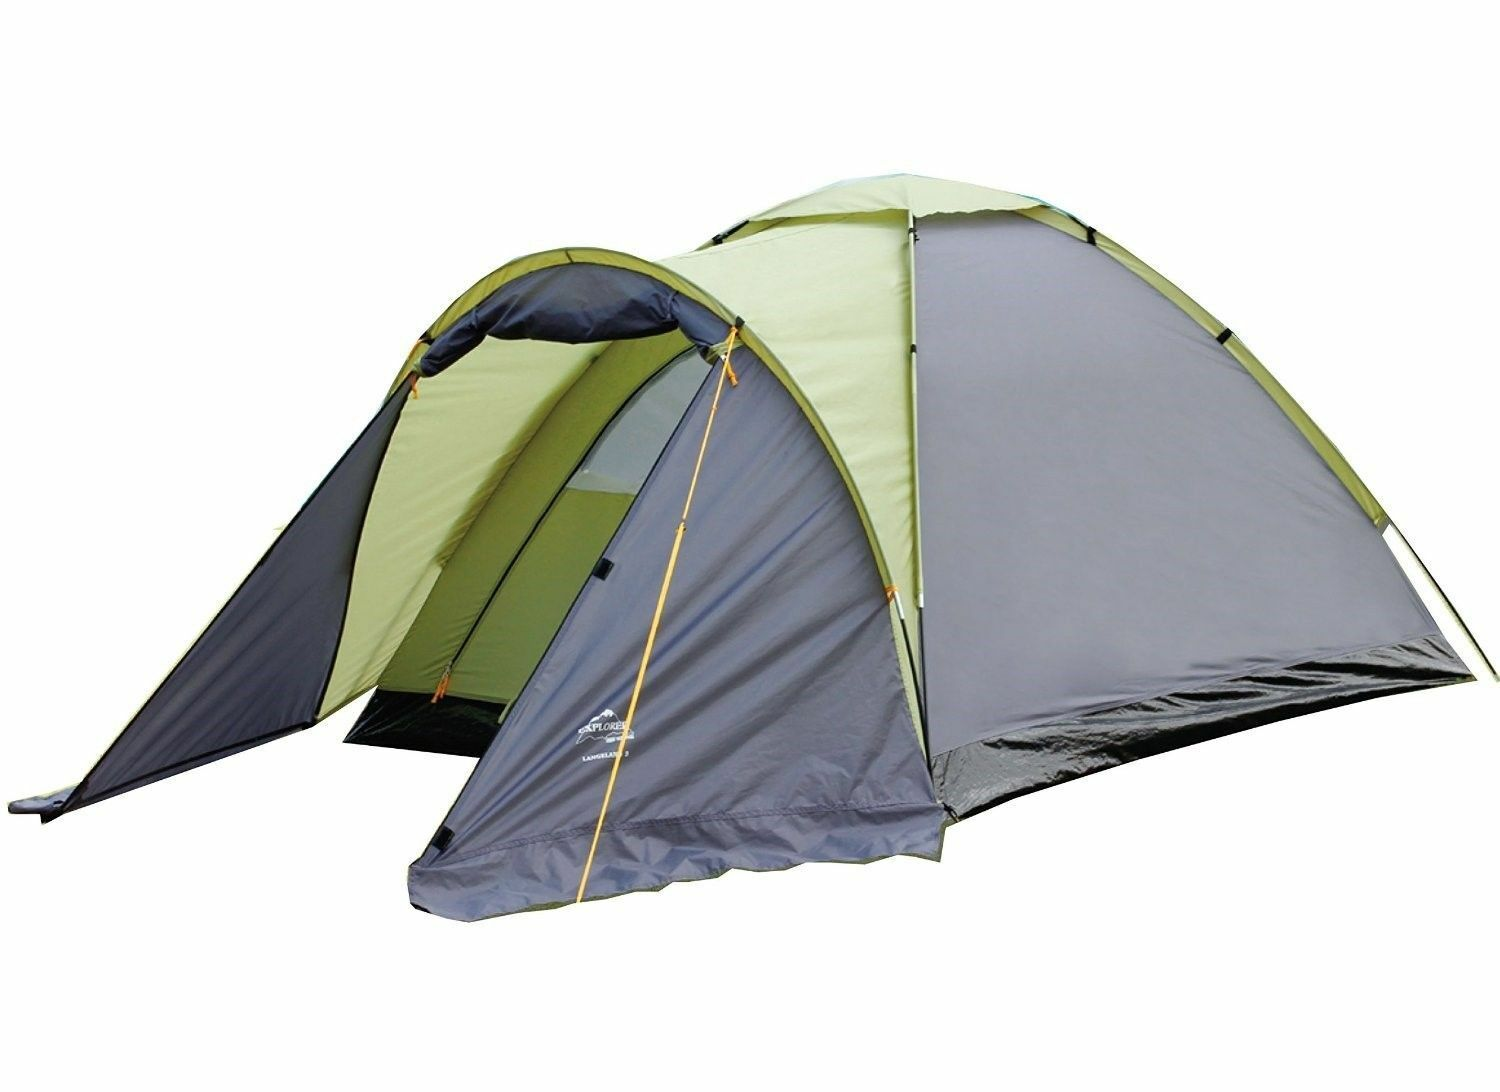 Explorer Langeland 3 Pers. Dome Tent Camping Tent Igloo Festival Tent 1000mm Ws